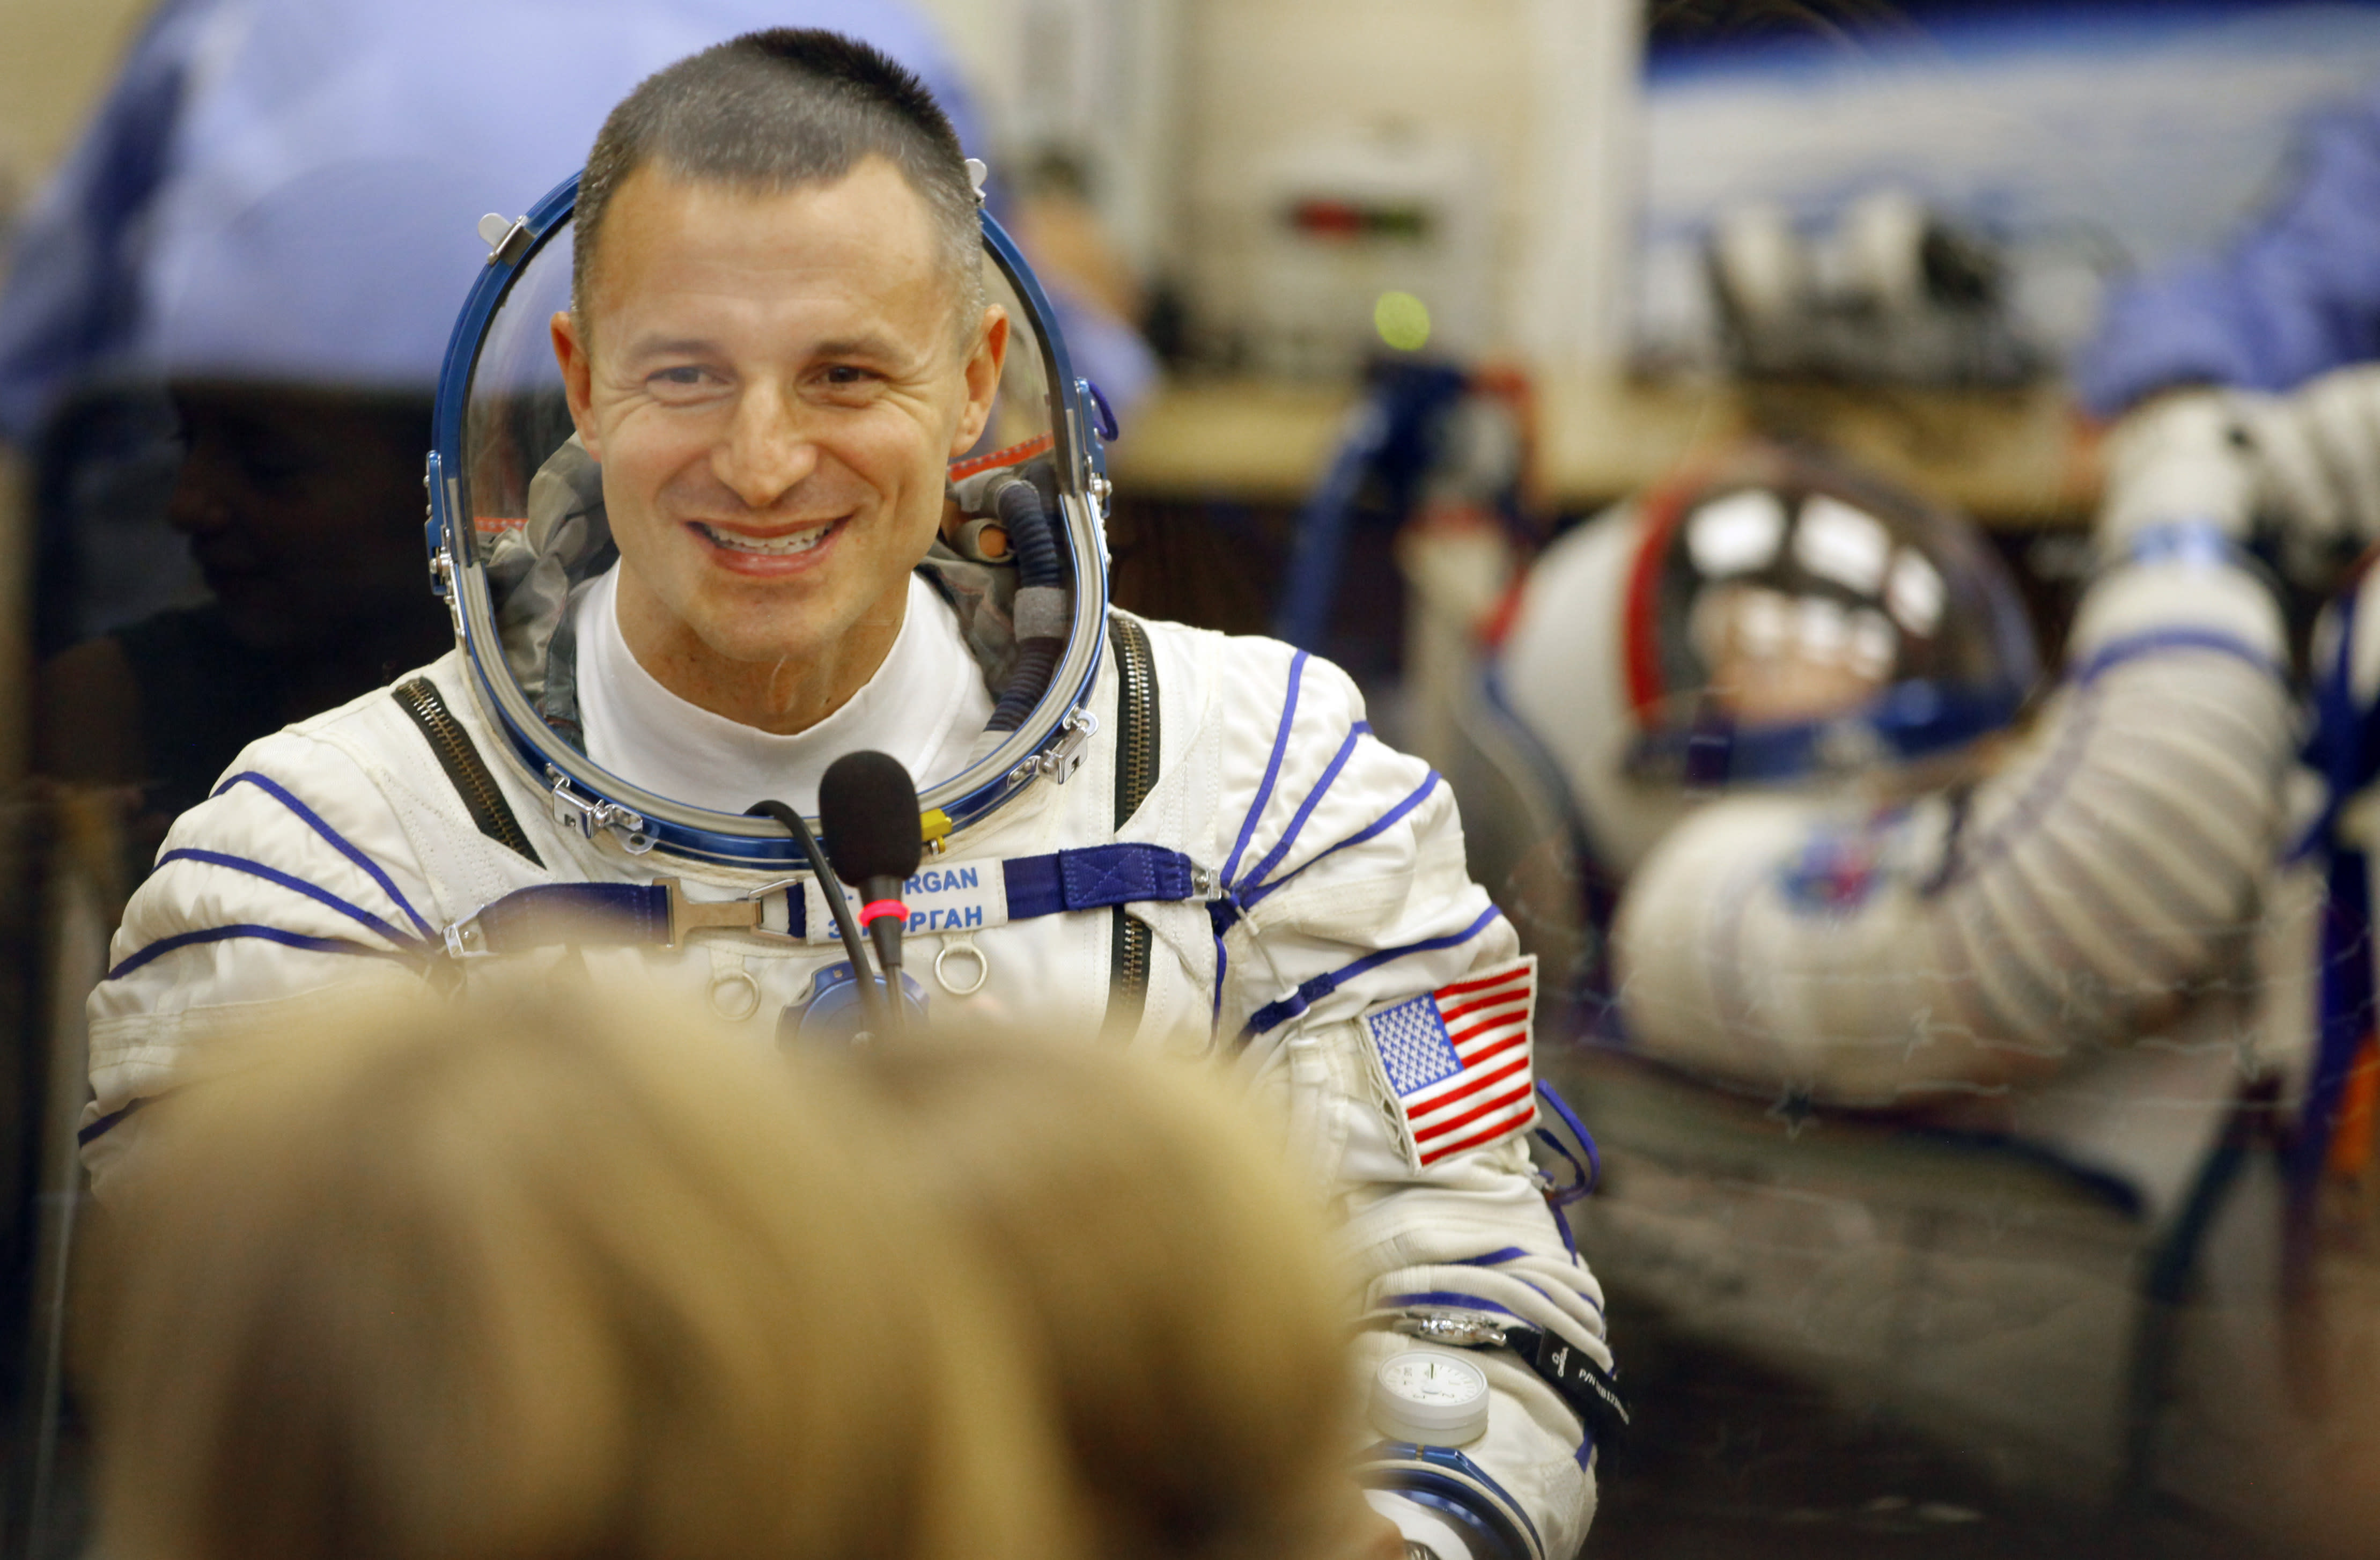 U.S. astronaut Andrew Morgan, speaks with his relatives through the safety glass prior the launch of Soyuz-FG rocket at the Russian leased Baikonur cosmodrome, Kazakhstan, Saturday, July 20, 2019. (AP Photo/Dmitri Lovetsky)